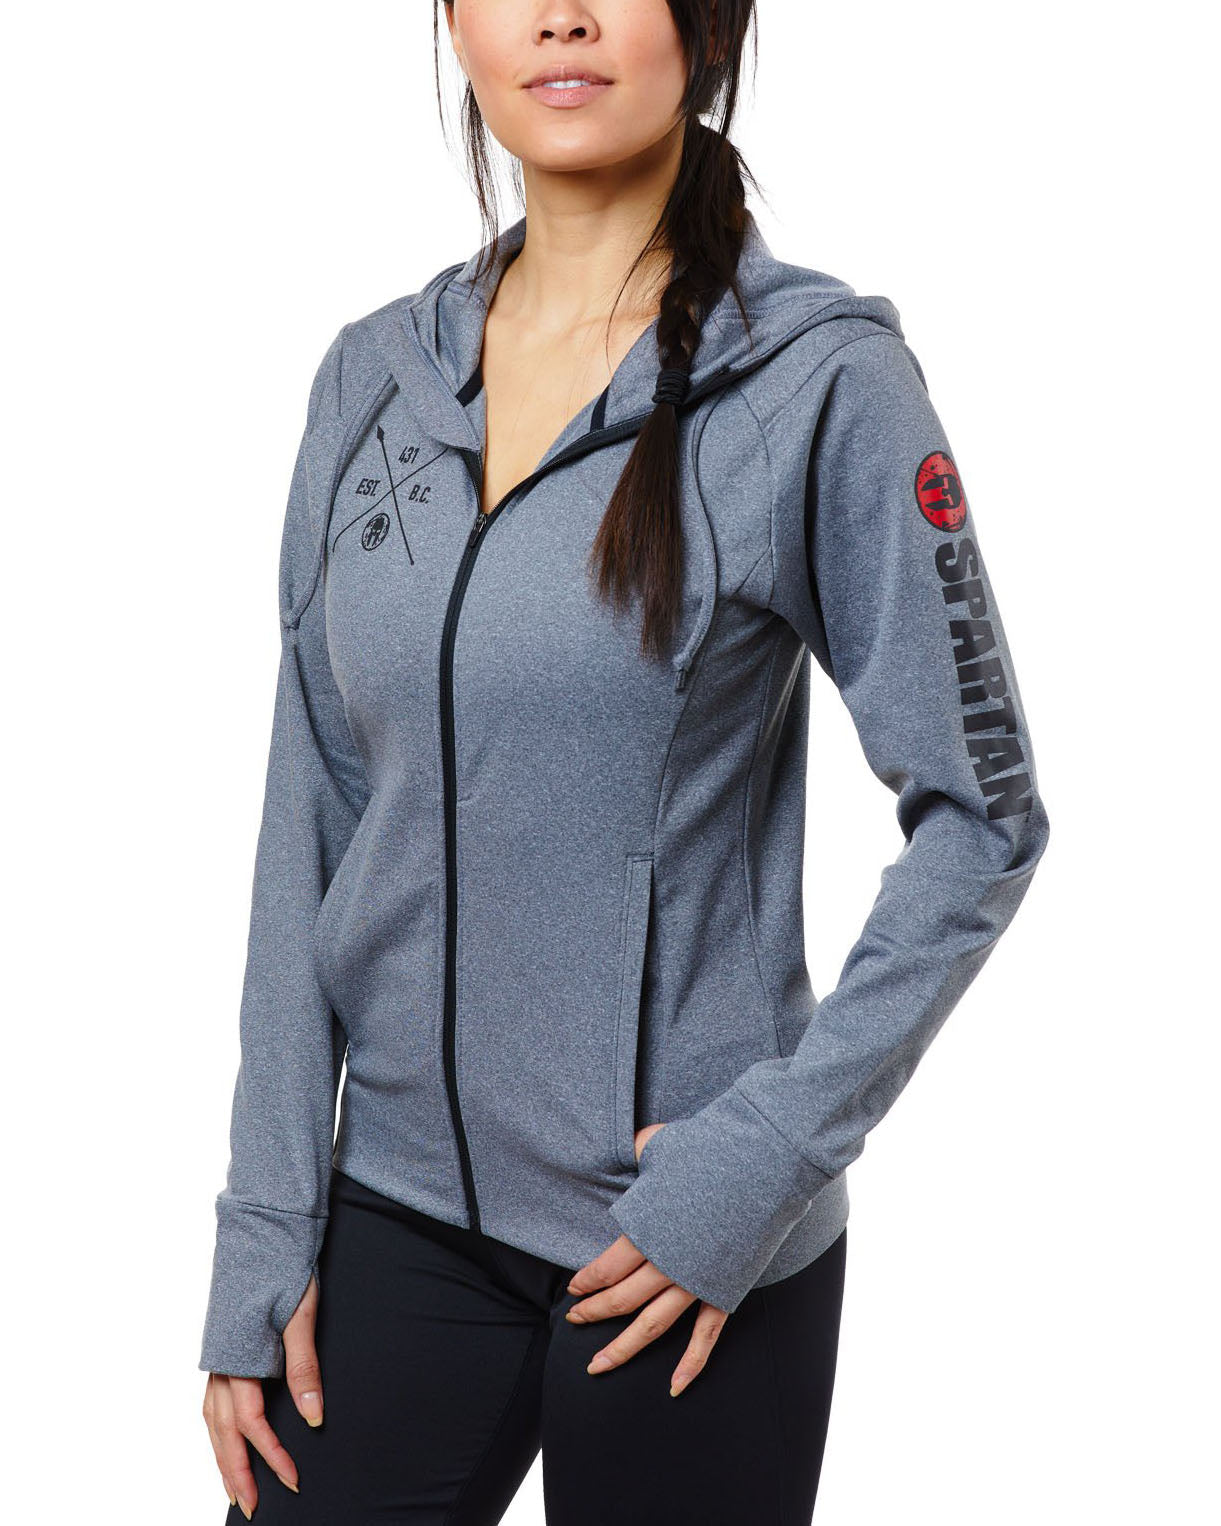 SPARTAN Performance Fleece Full Zip Hoodie - Women's